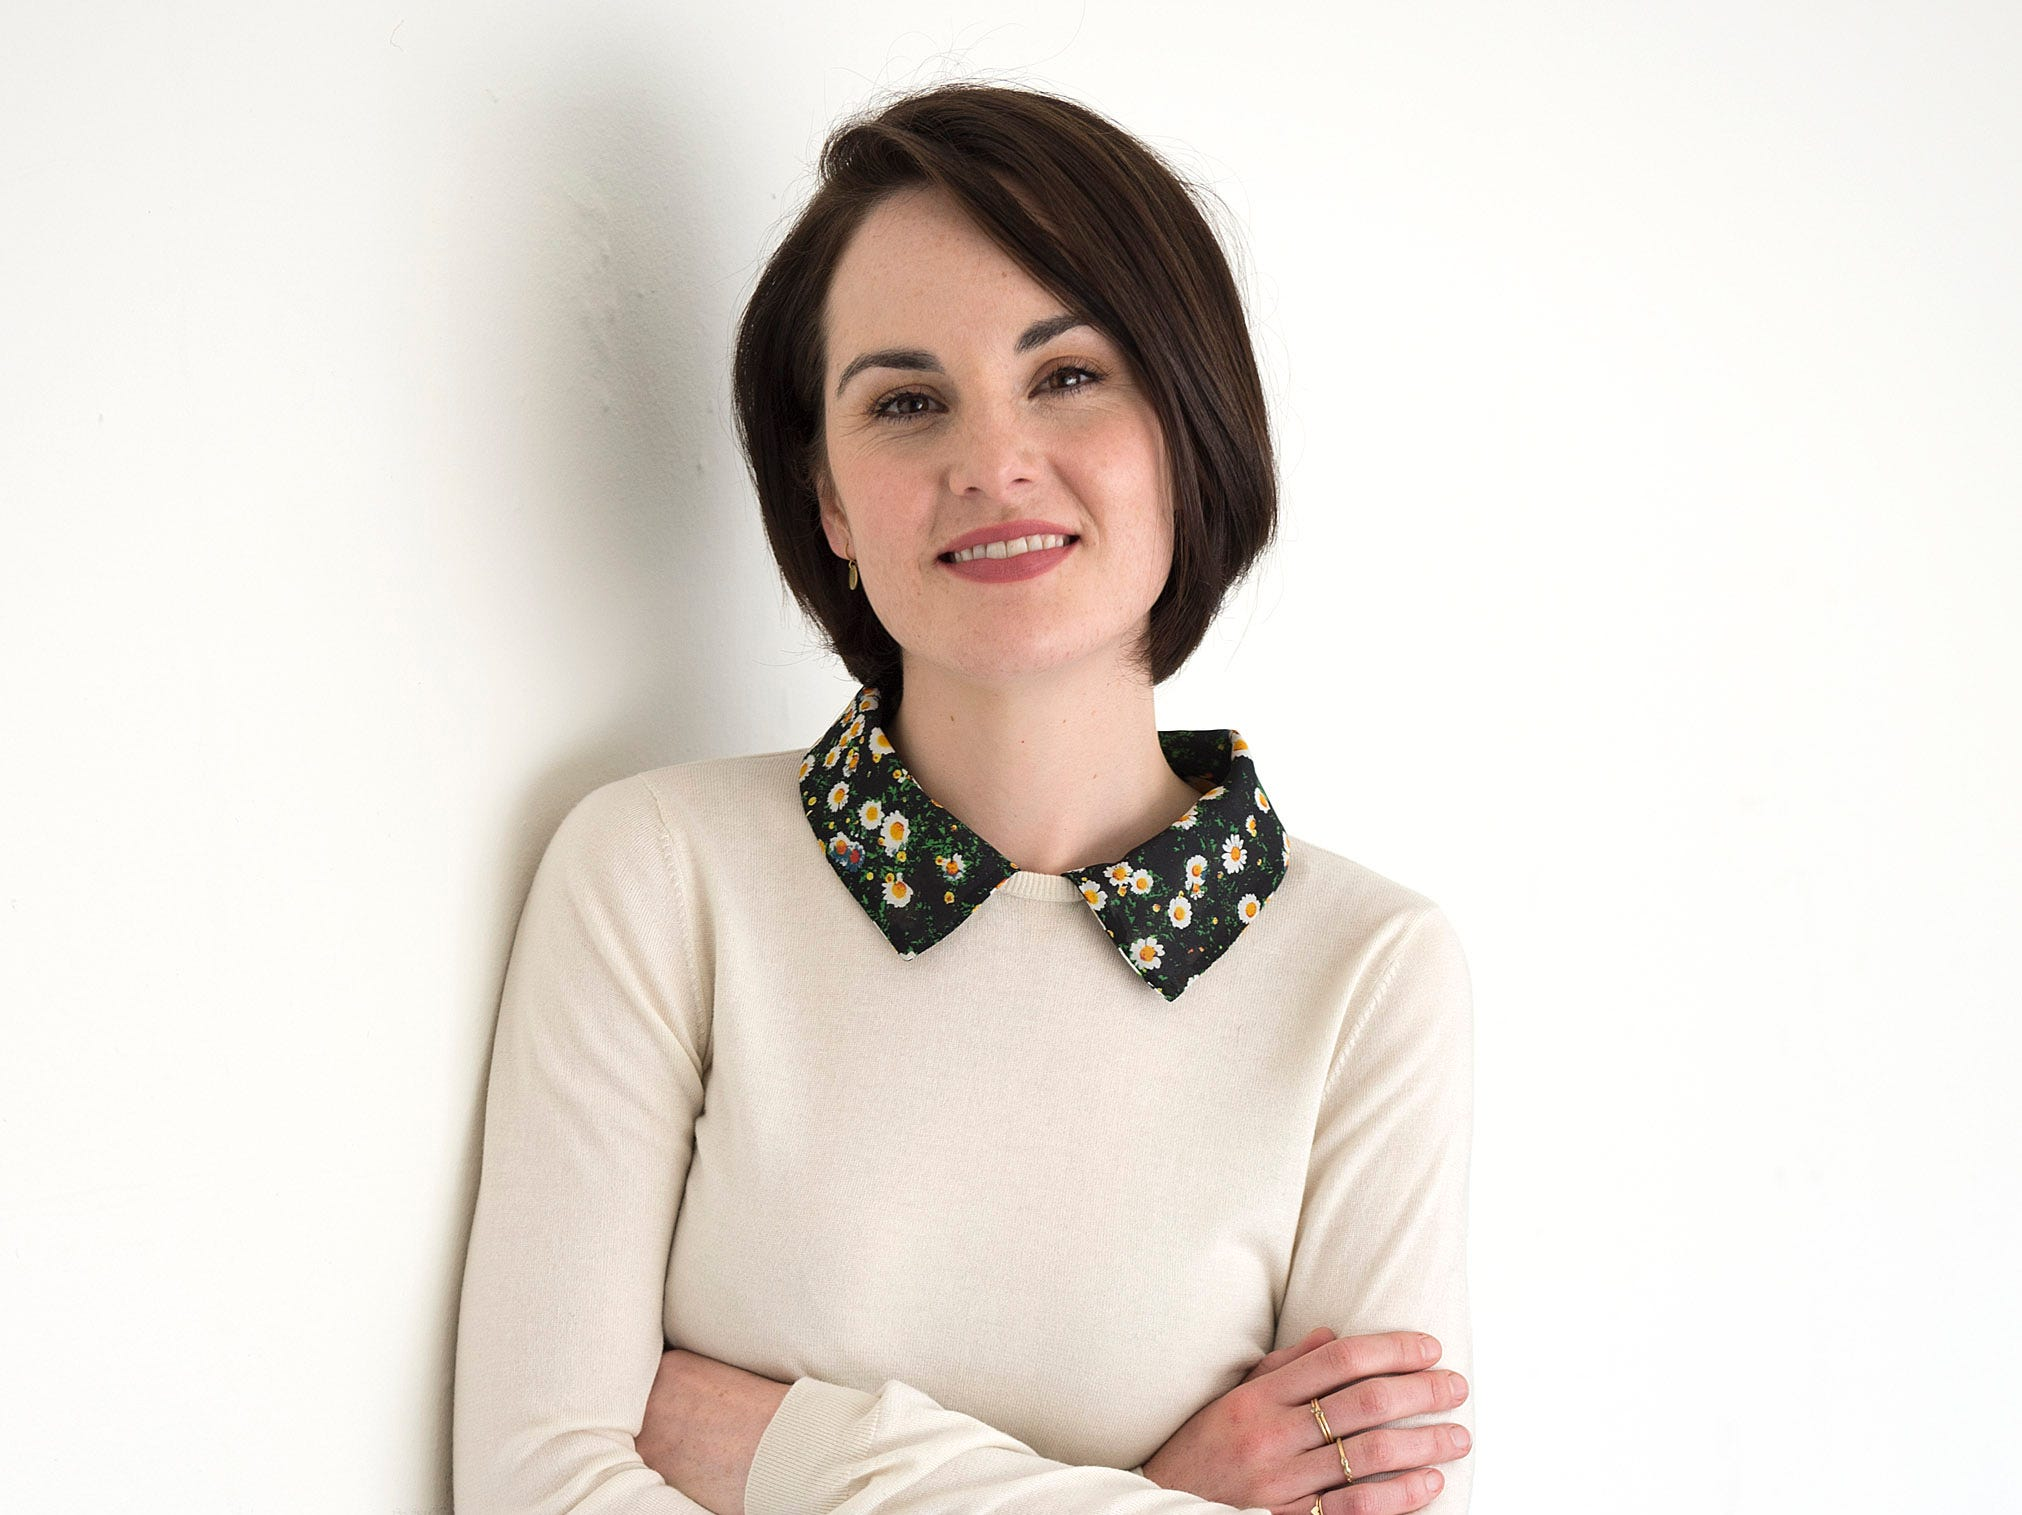 'Downton Abbey' actress Michelle Dockery looks prim and proper, like her on-screen alter ego in a collared sweater and flouncy skirt during a portrait session in Beverly Hills on Aug. 6.